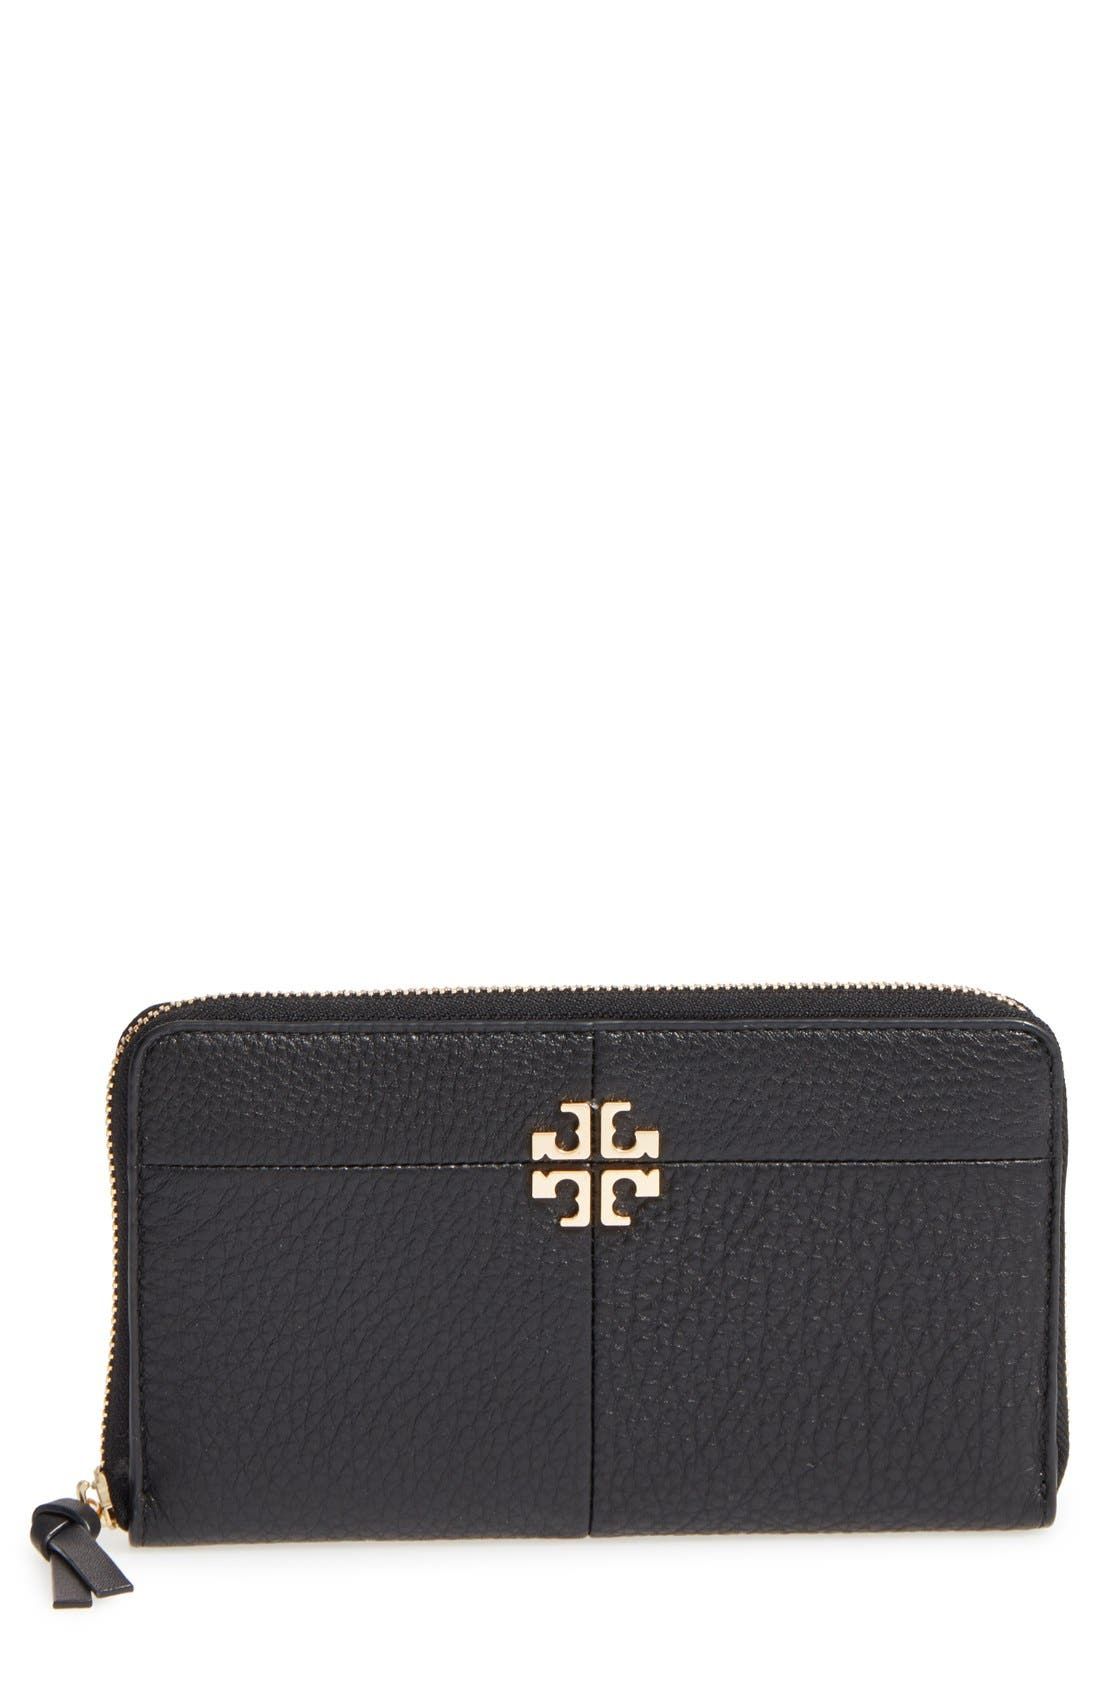 Main Image - Tory Burch Ivy Leather Continental Wallet